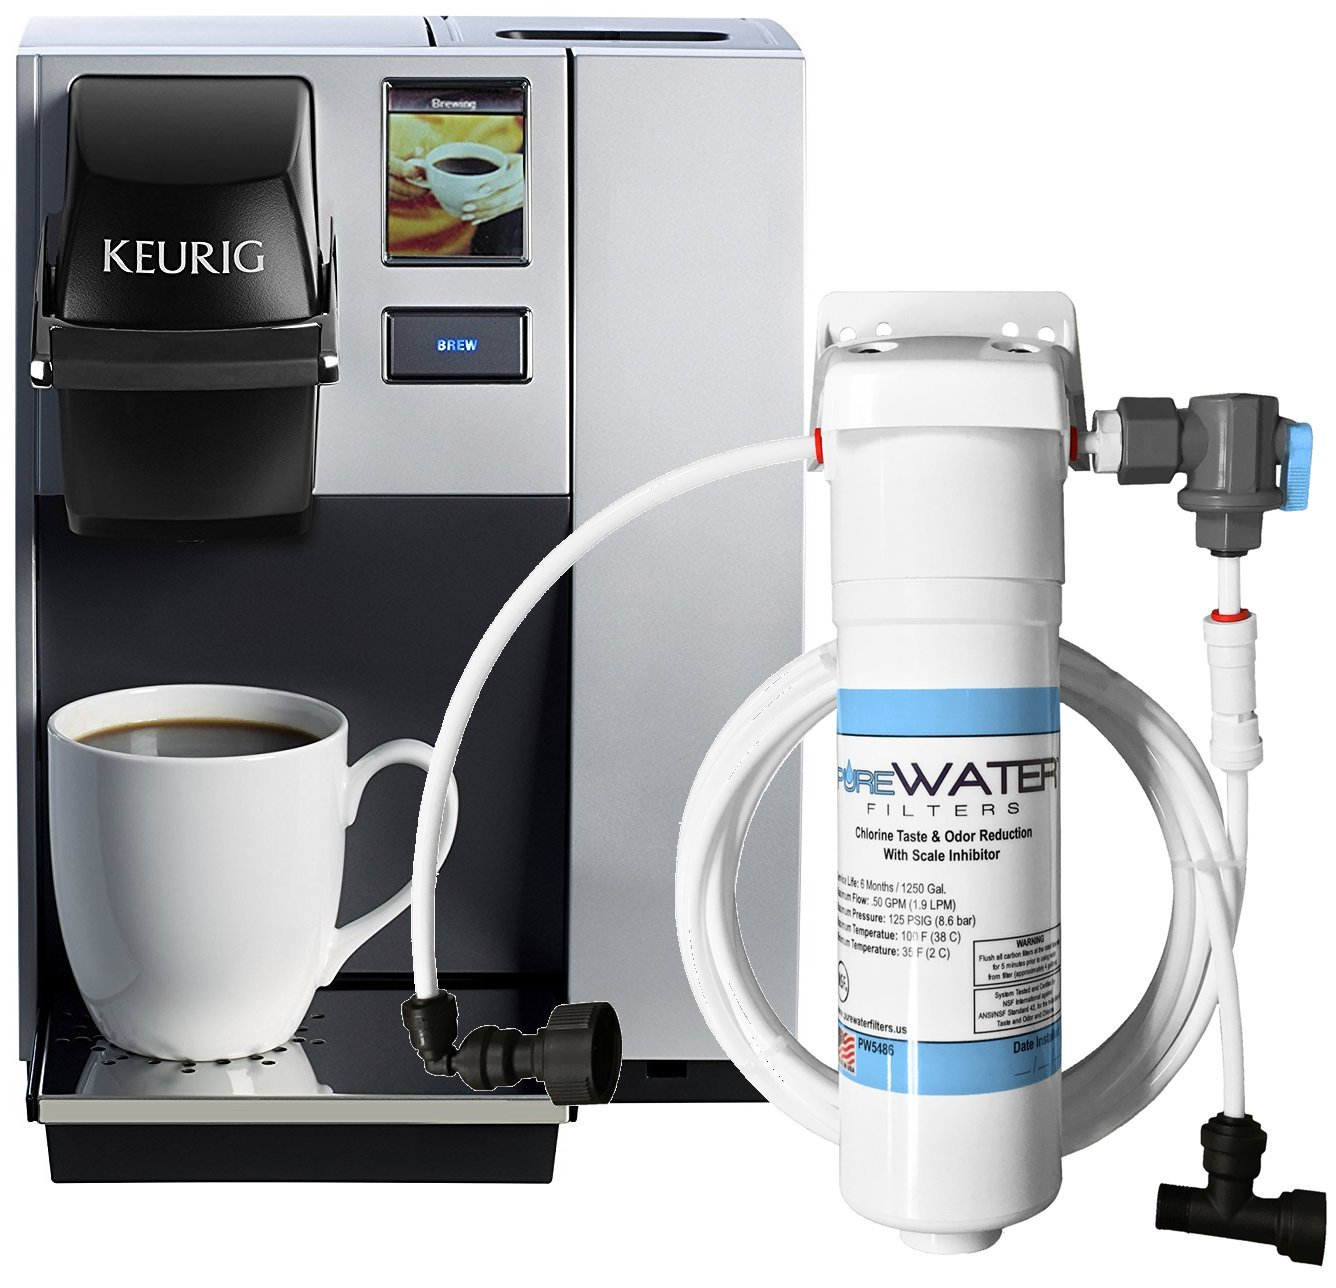 Keurig K150P Commercial Brewer with Direct Water Line Plumb Kit and Filter Kit by PureWater Filters